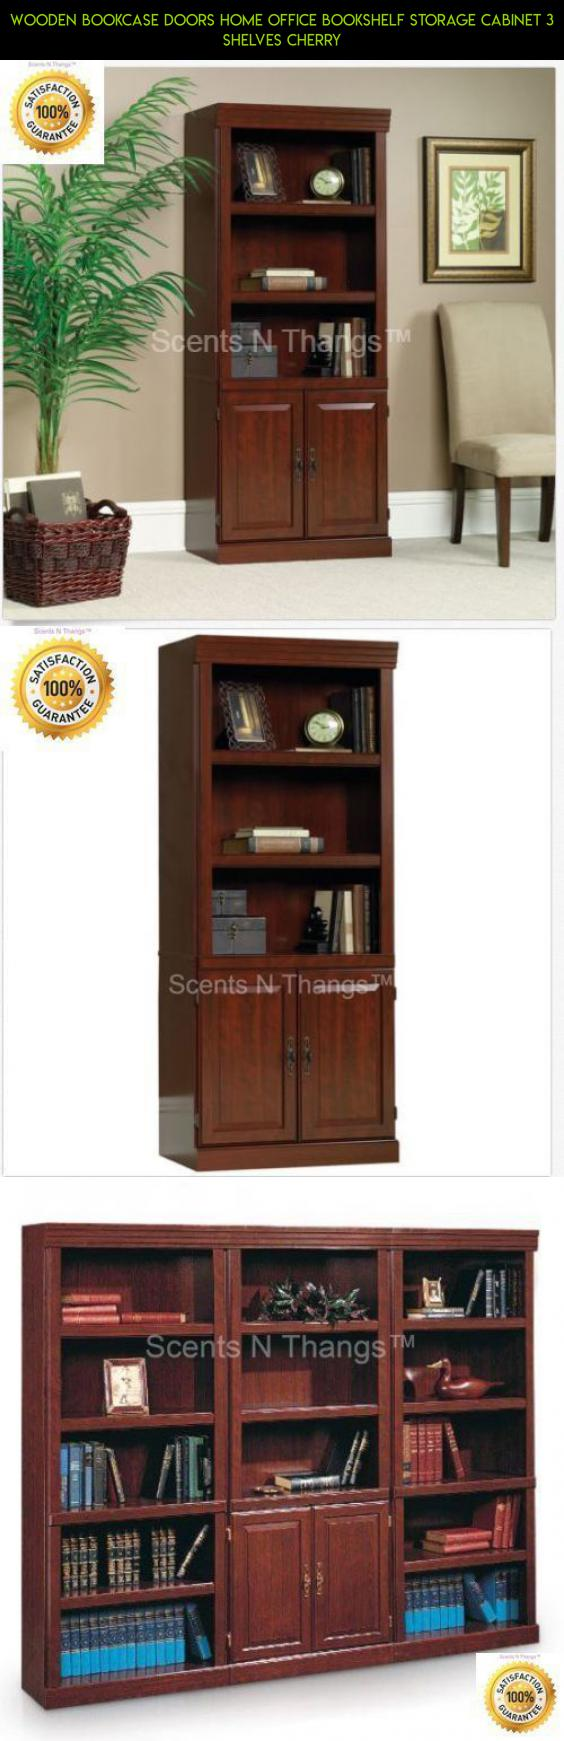 bookcases bookshelf barn that pottery learn sliding from five unconventional knowledge walmart kit with furnishings doors bayside books cant door hidden costco you about shelves bookcase